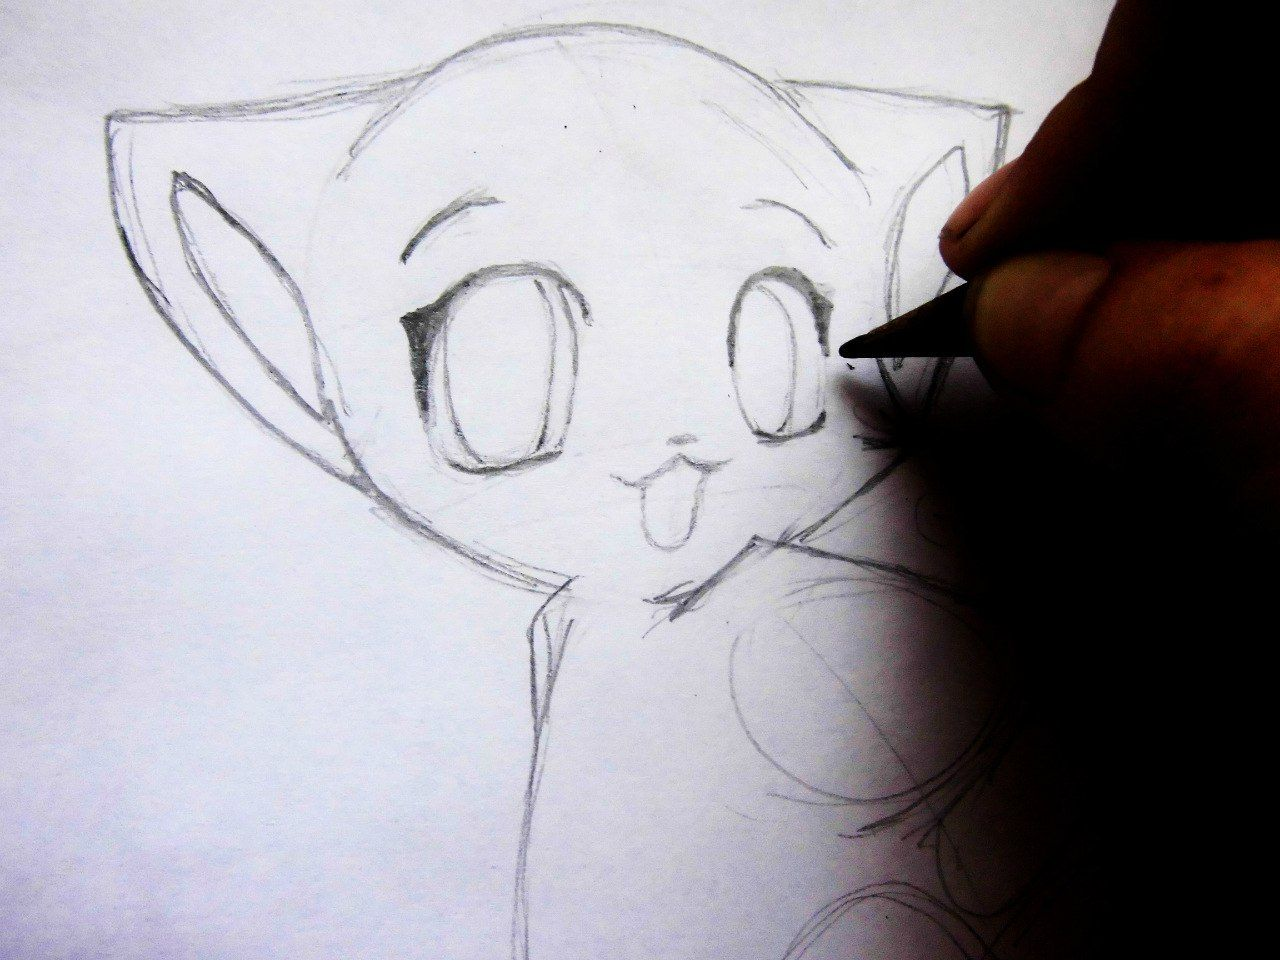 We draw an anime the girl a pencil on paper 4